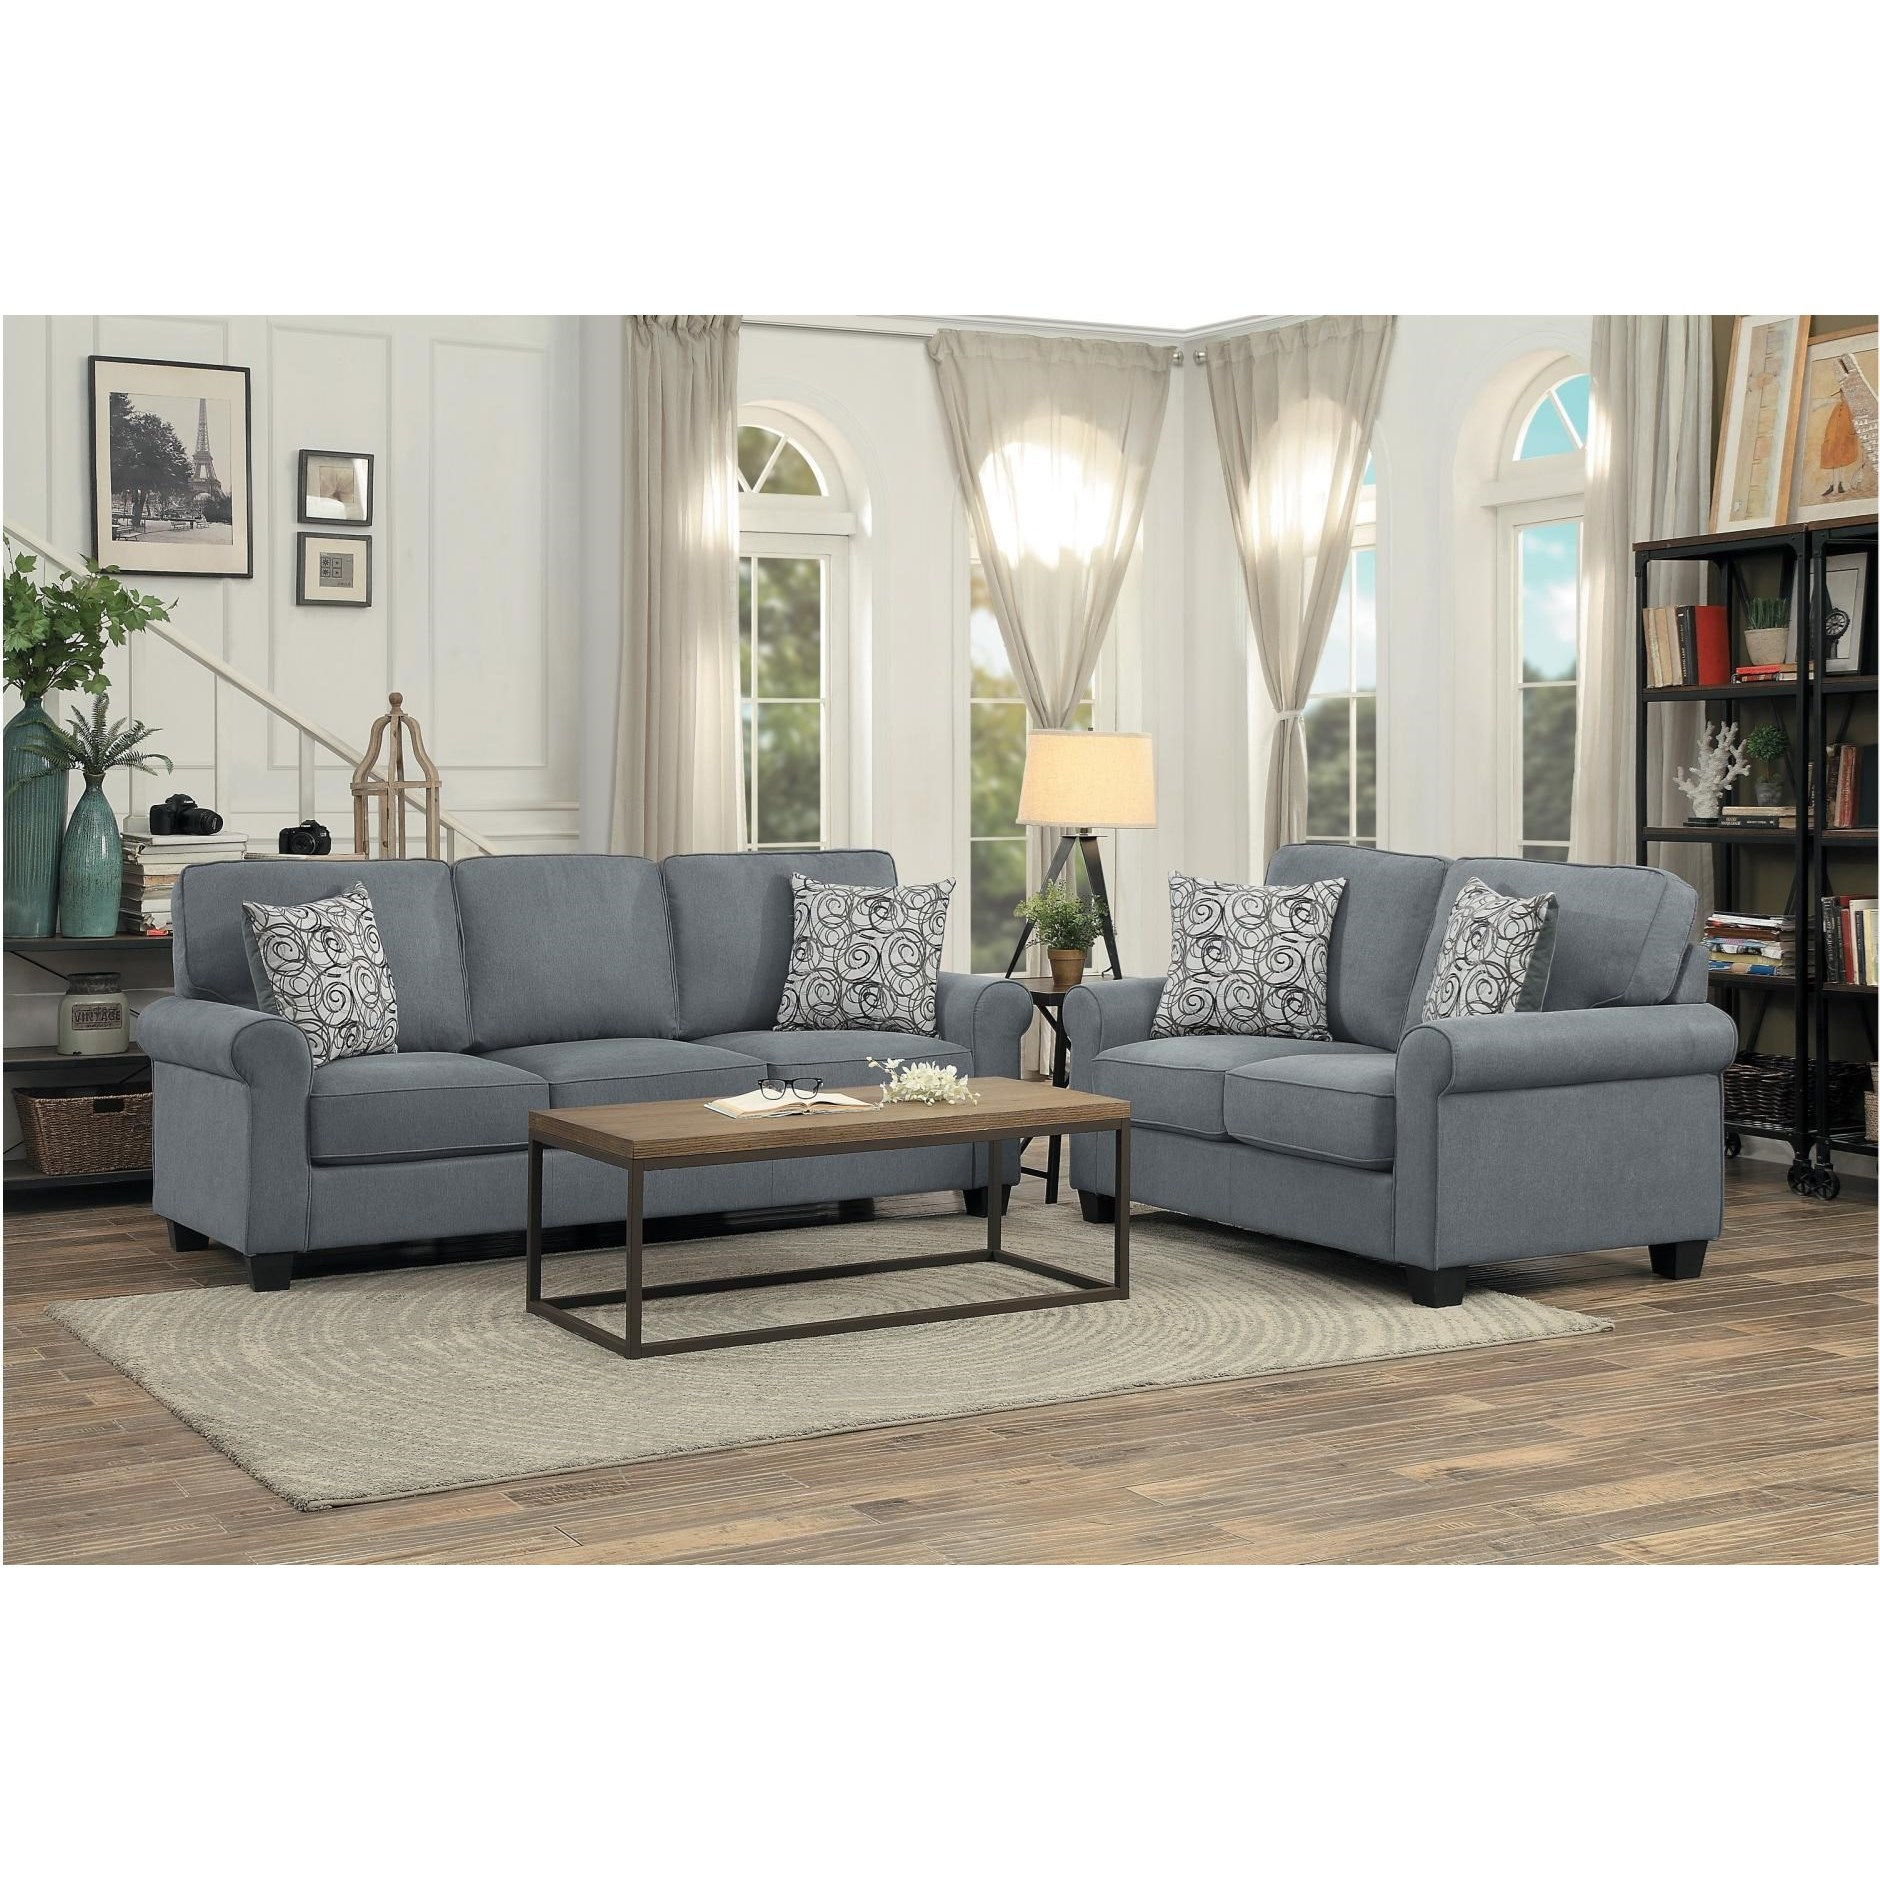 Selkirk Living Room Group by Homelegance at A1 Furniture & Mattress